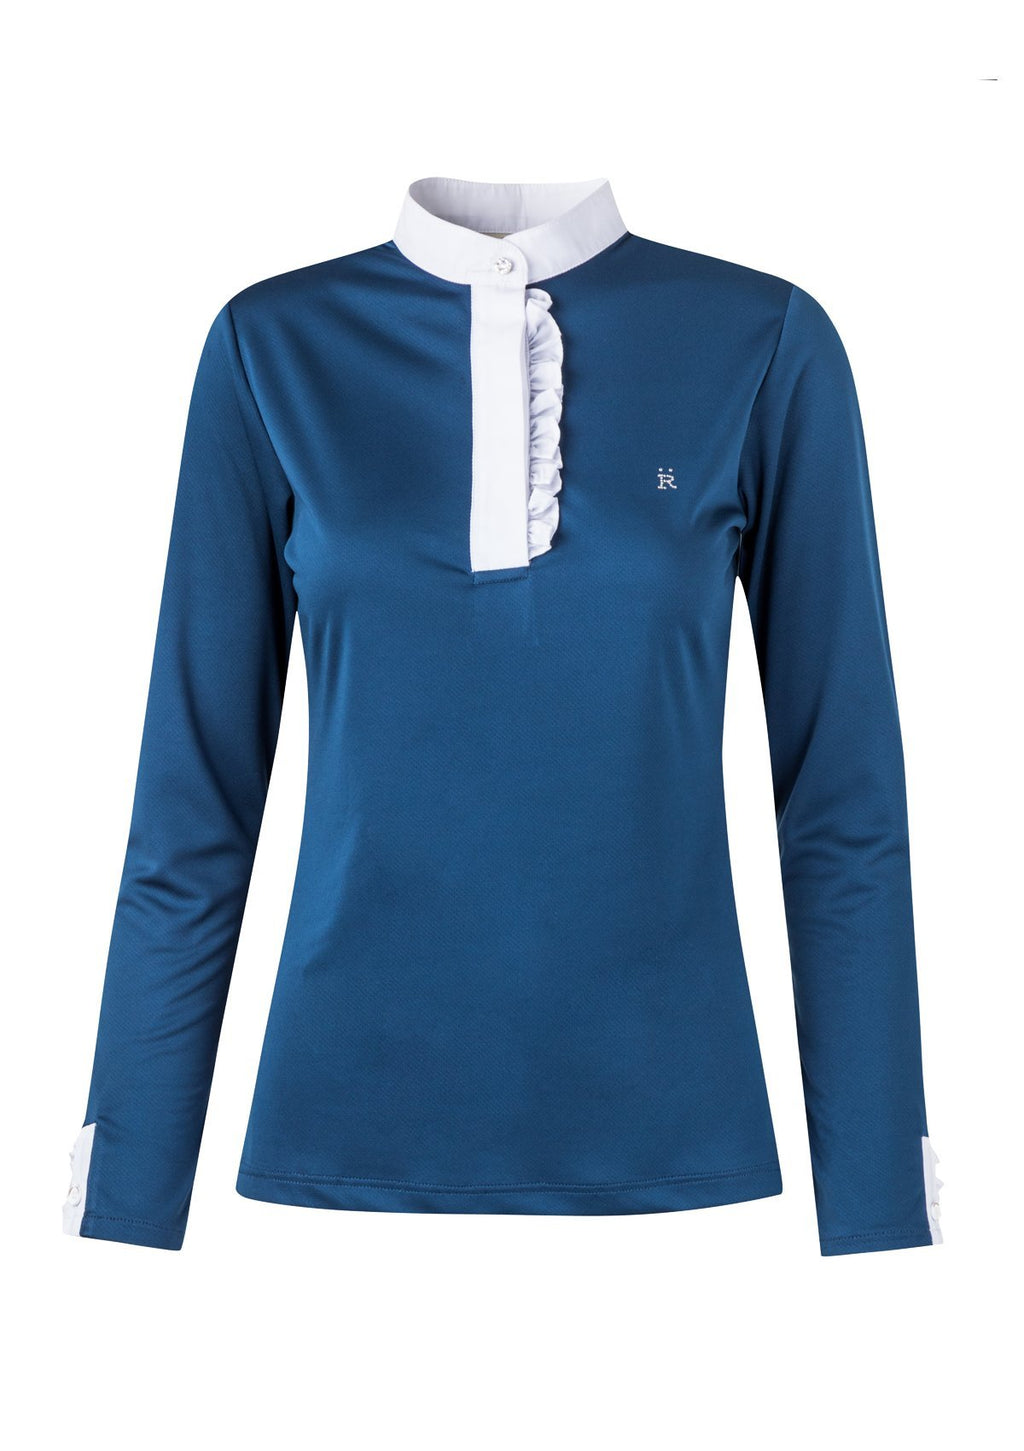 Ronner Bianca Show Shirt Navy - The Dressage Store